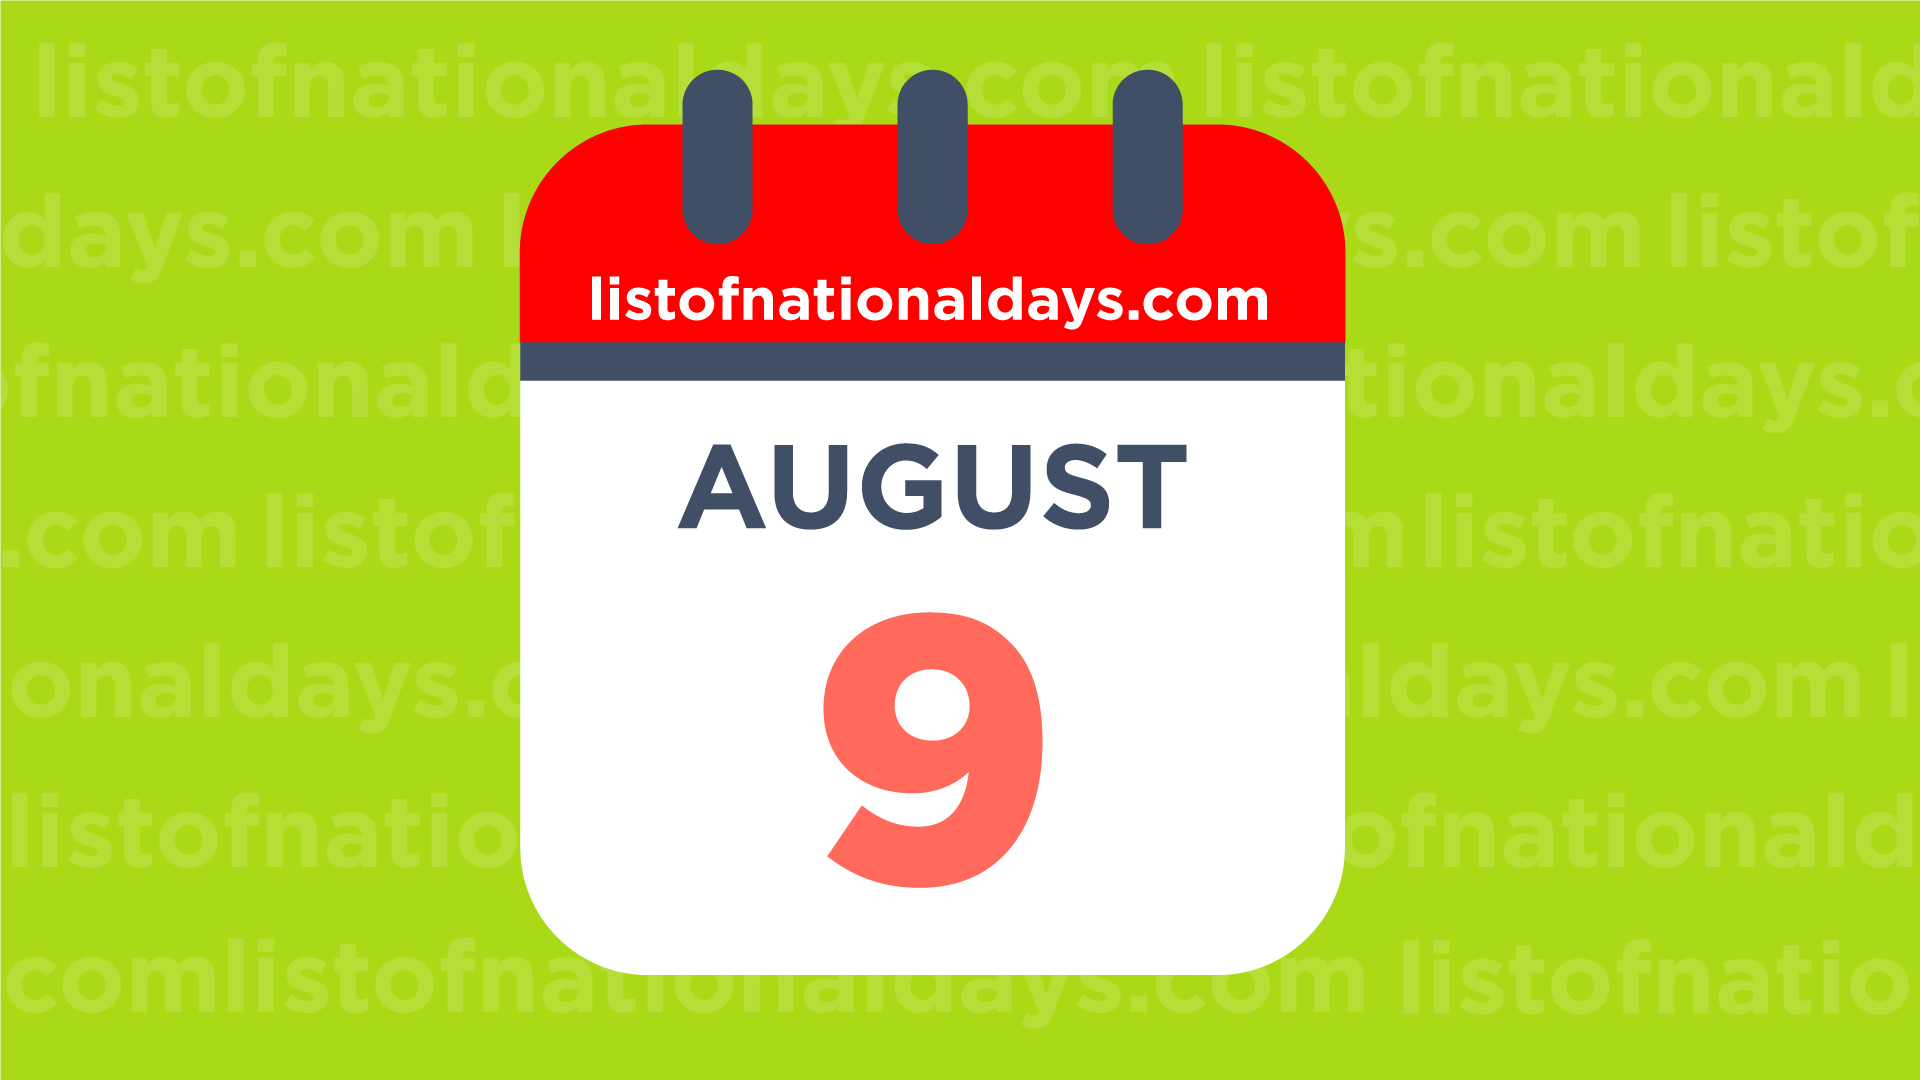 AUGUST 9TH: National Holidays,Observances & Famous Birthdays  |9 August